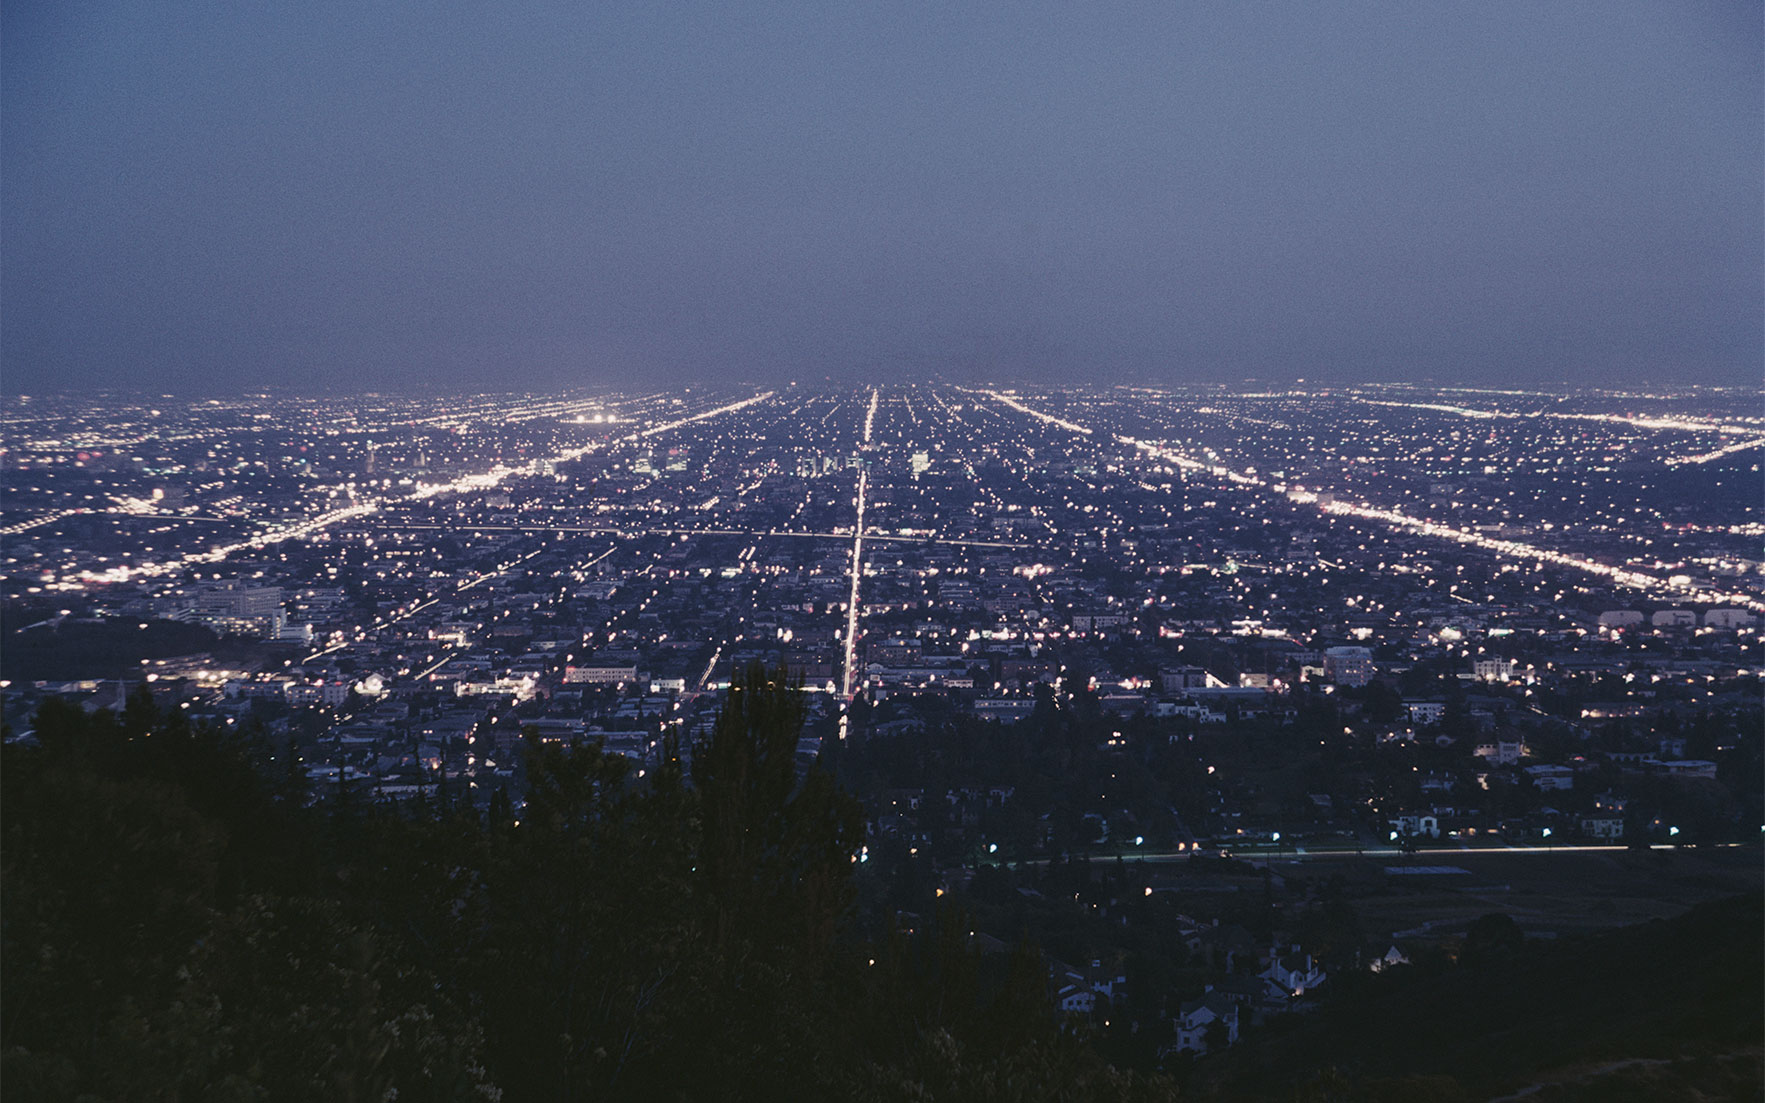 Aerial view of Los Angeles at night from the Griffith Observatory, Los Angeles, California, circa 1962. Photo Archive PhotosGetty Images